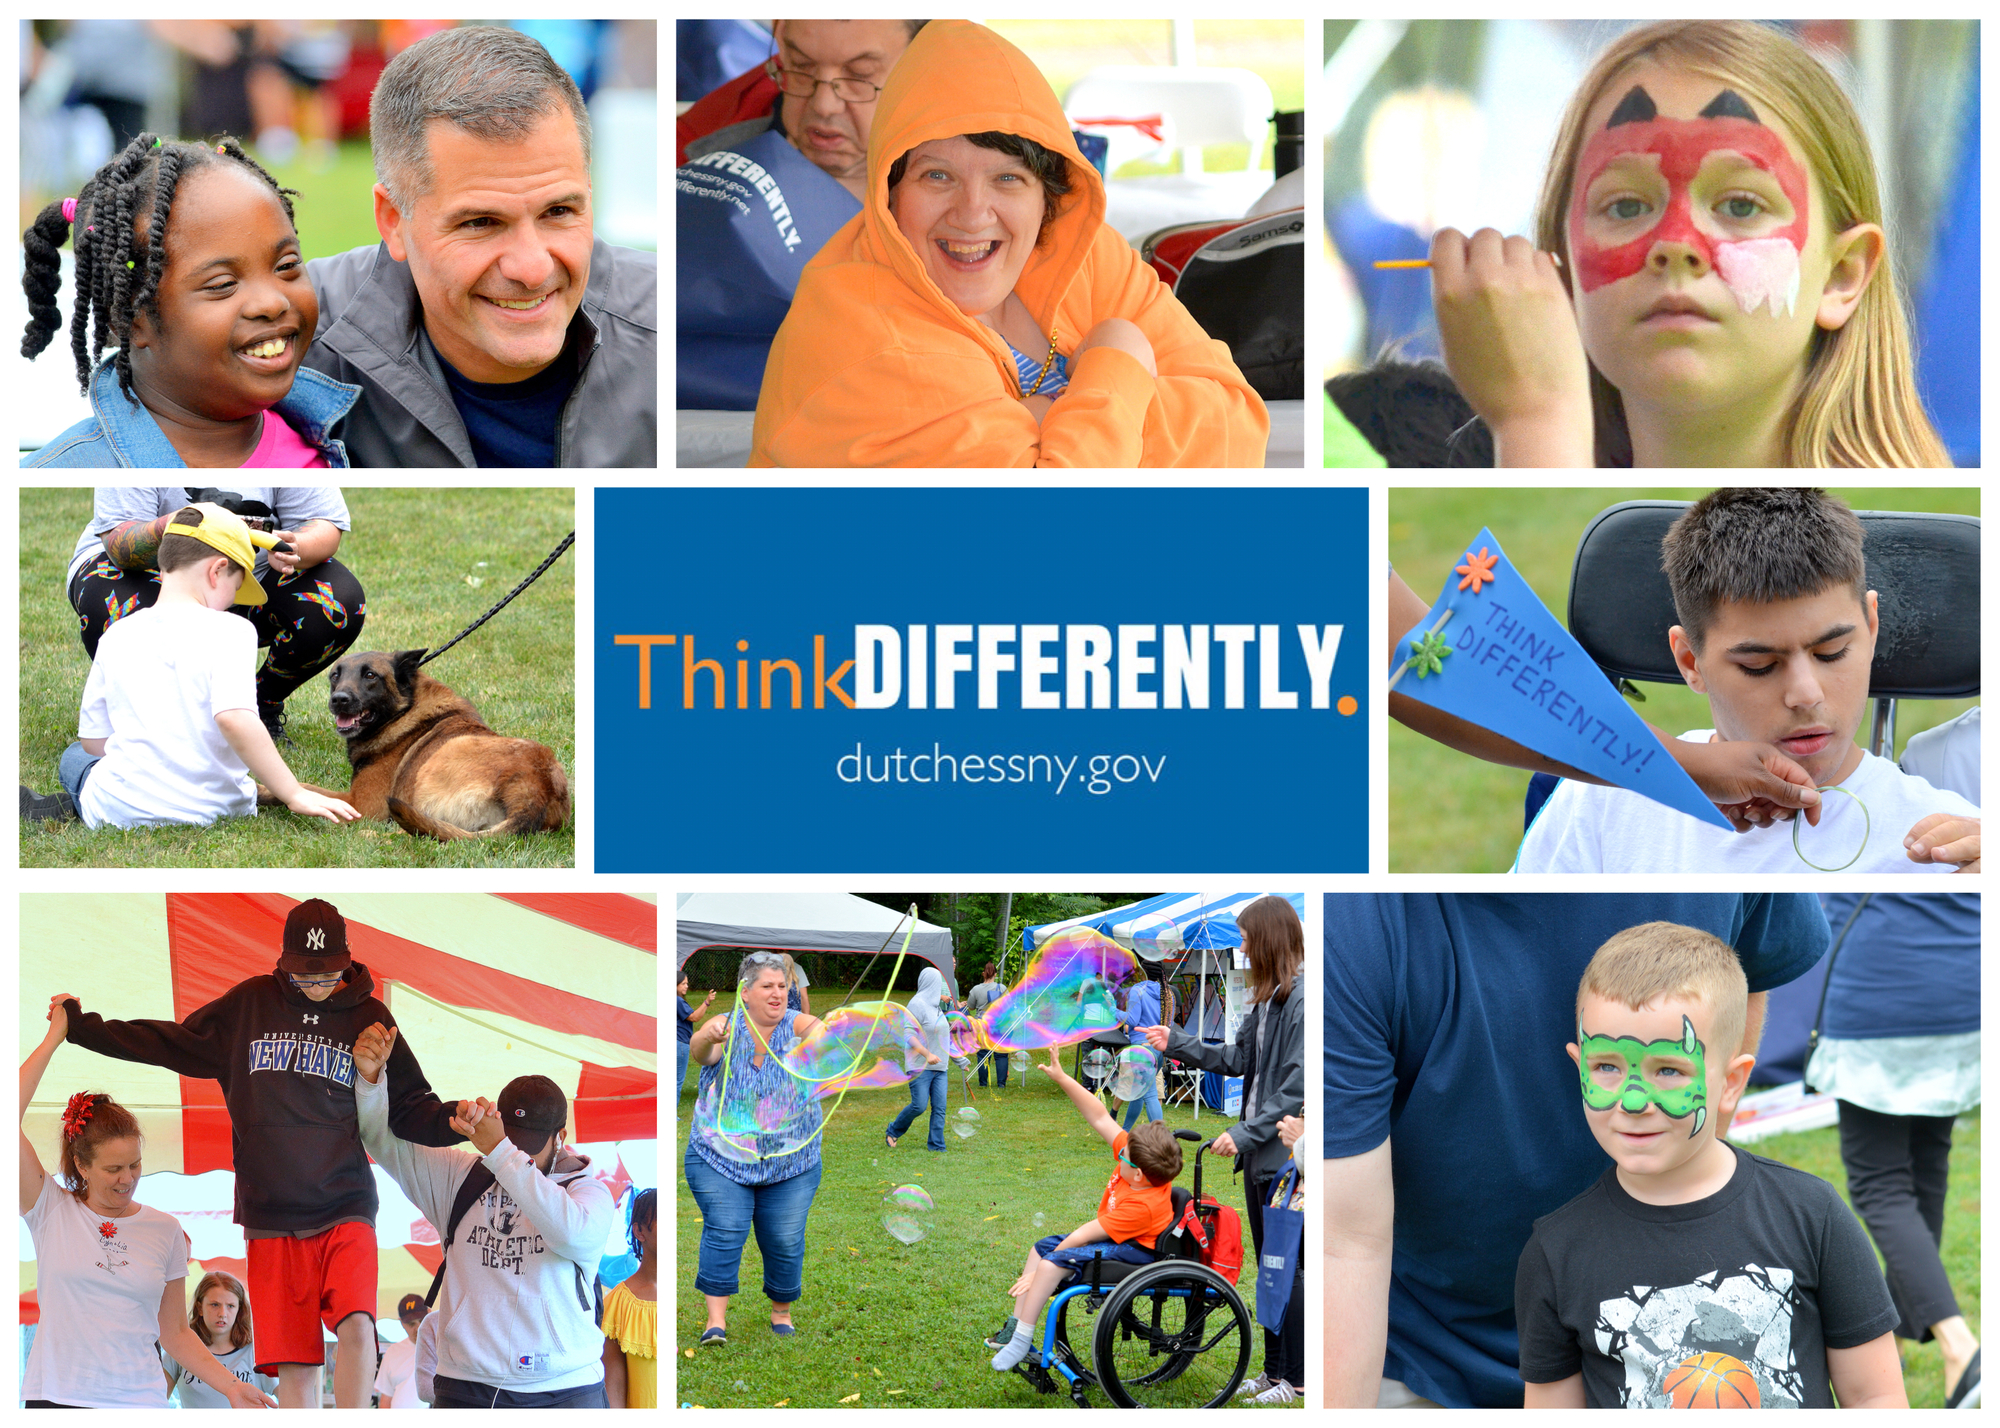 7th Annual ThinkDIFFERENTLY Picnic